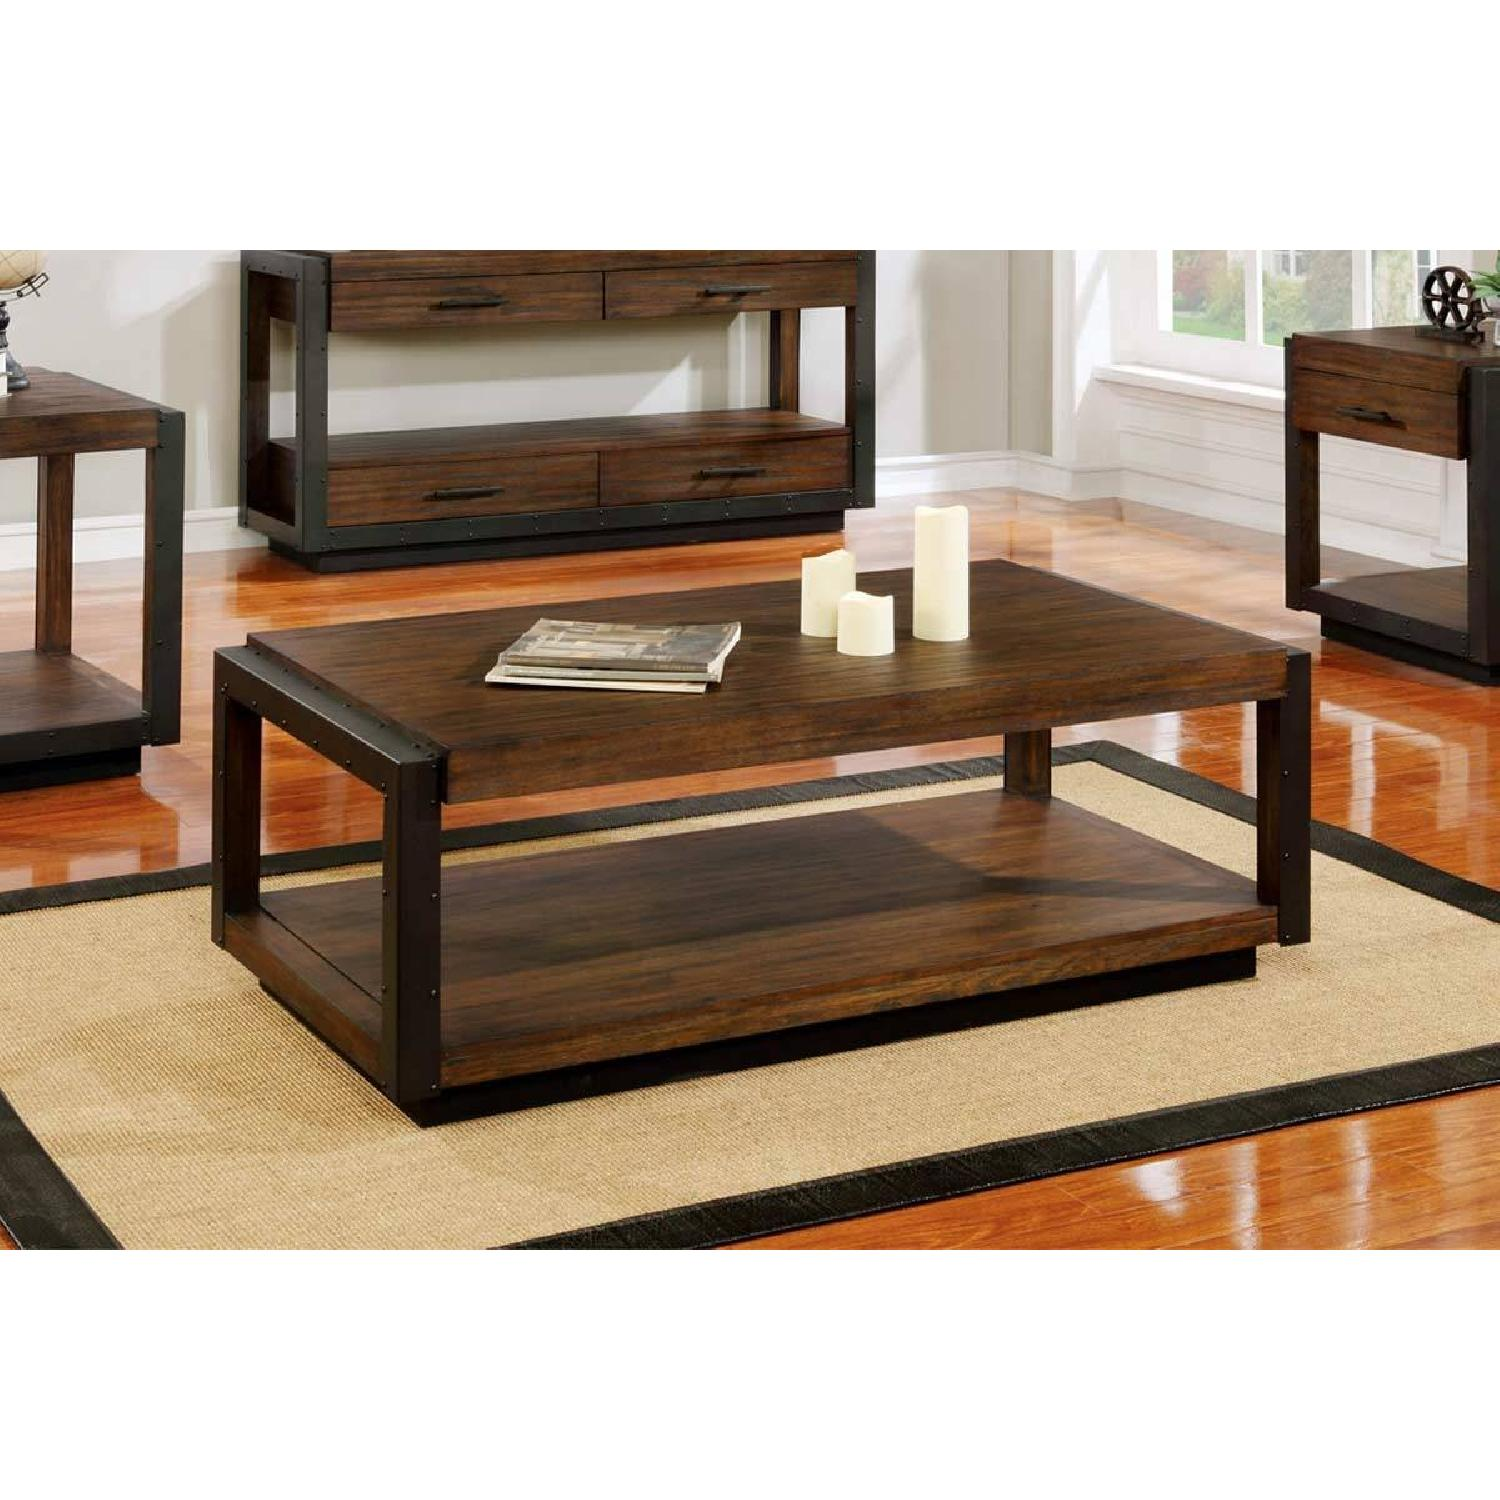 ... Industrial Style Coffee Table In Bourbon W/ Black Metal Trim 0 ...